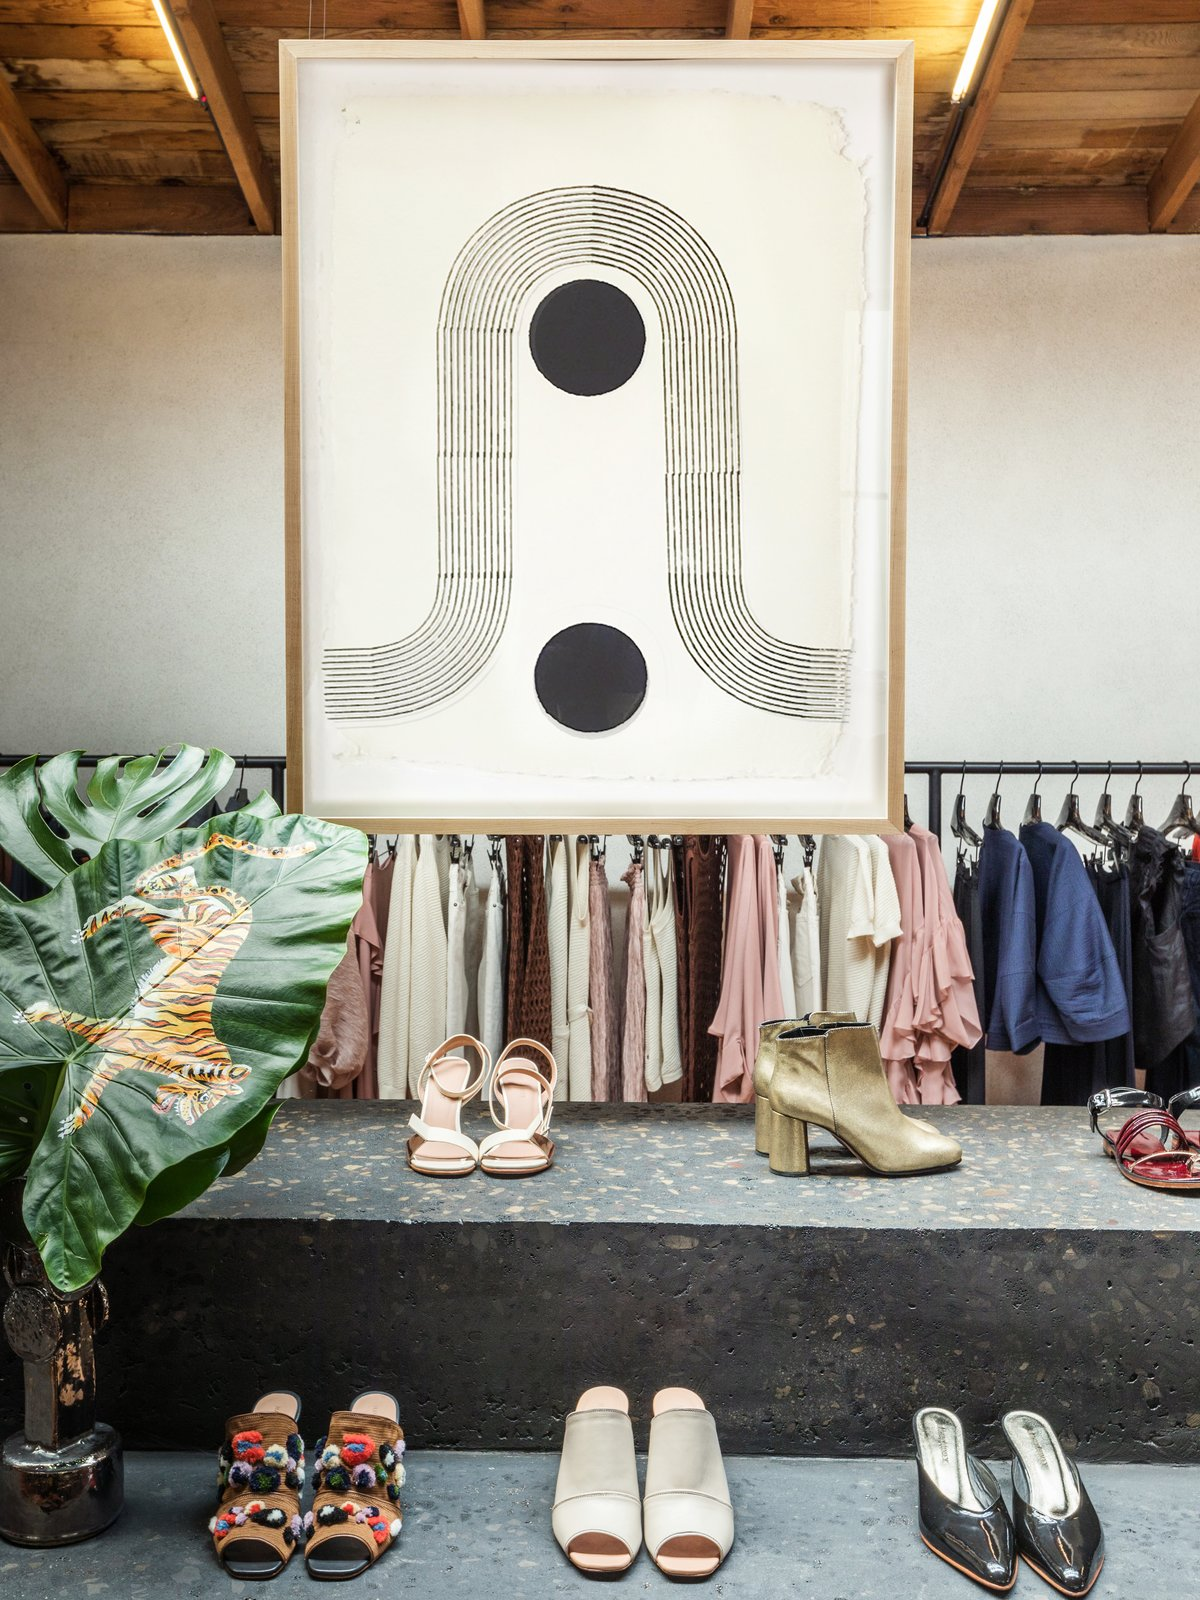 The woodblock prints will be available to purchase on Block Shop's website and at the Rachel Comey boutique throughout the fall season.  Photo 9 of 9 in The Block Shop Sisters Launch Their Framed Woodblock Prints at Rachel Comey's L.A. Boutique